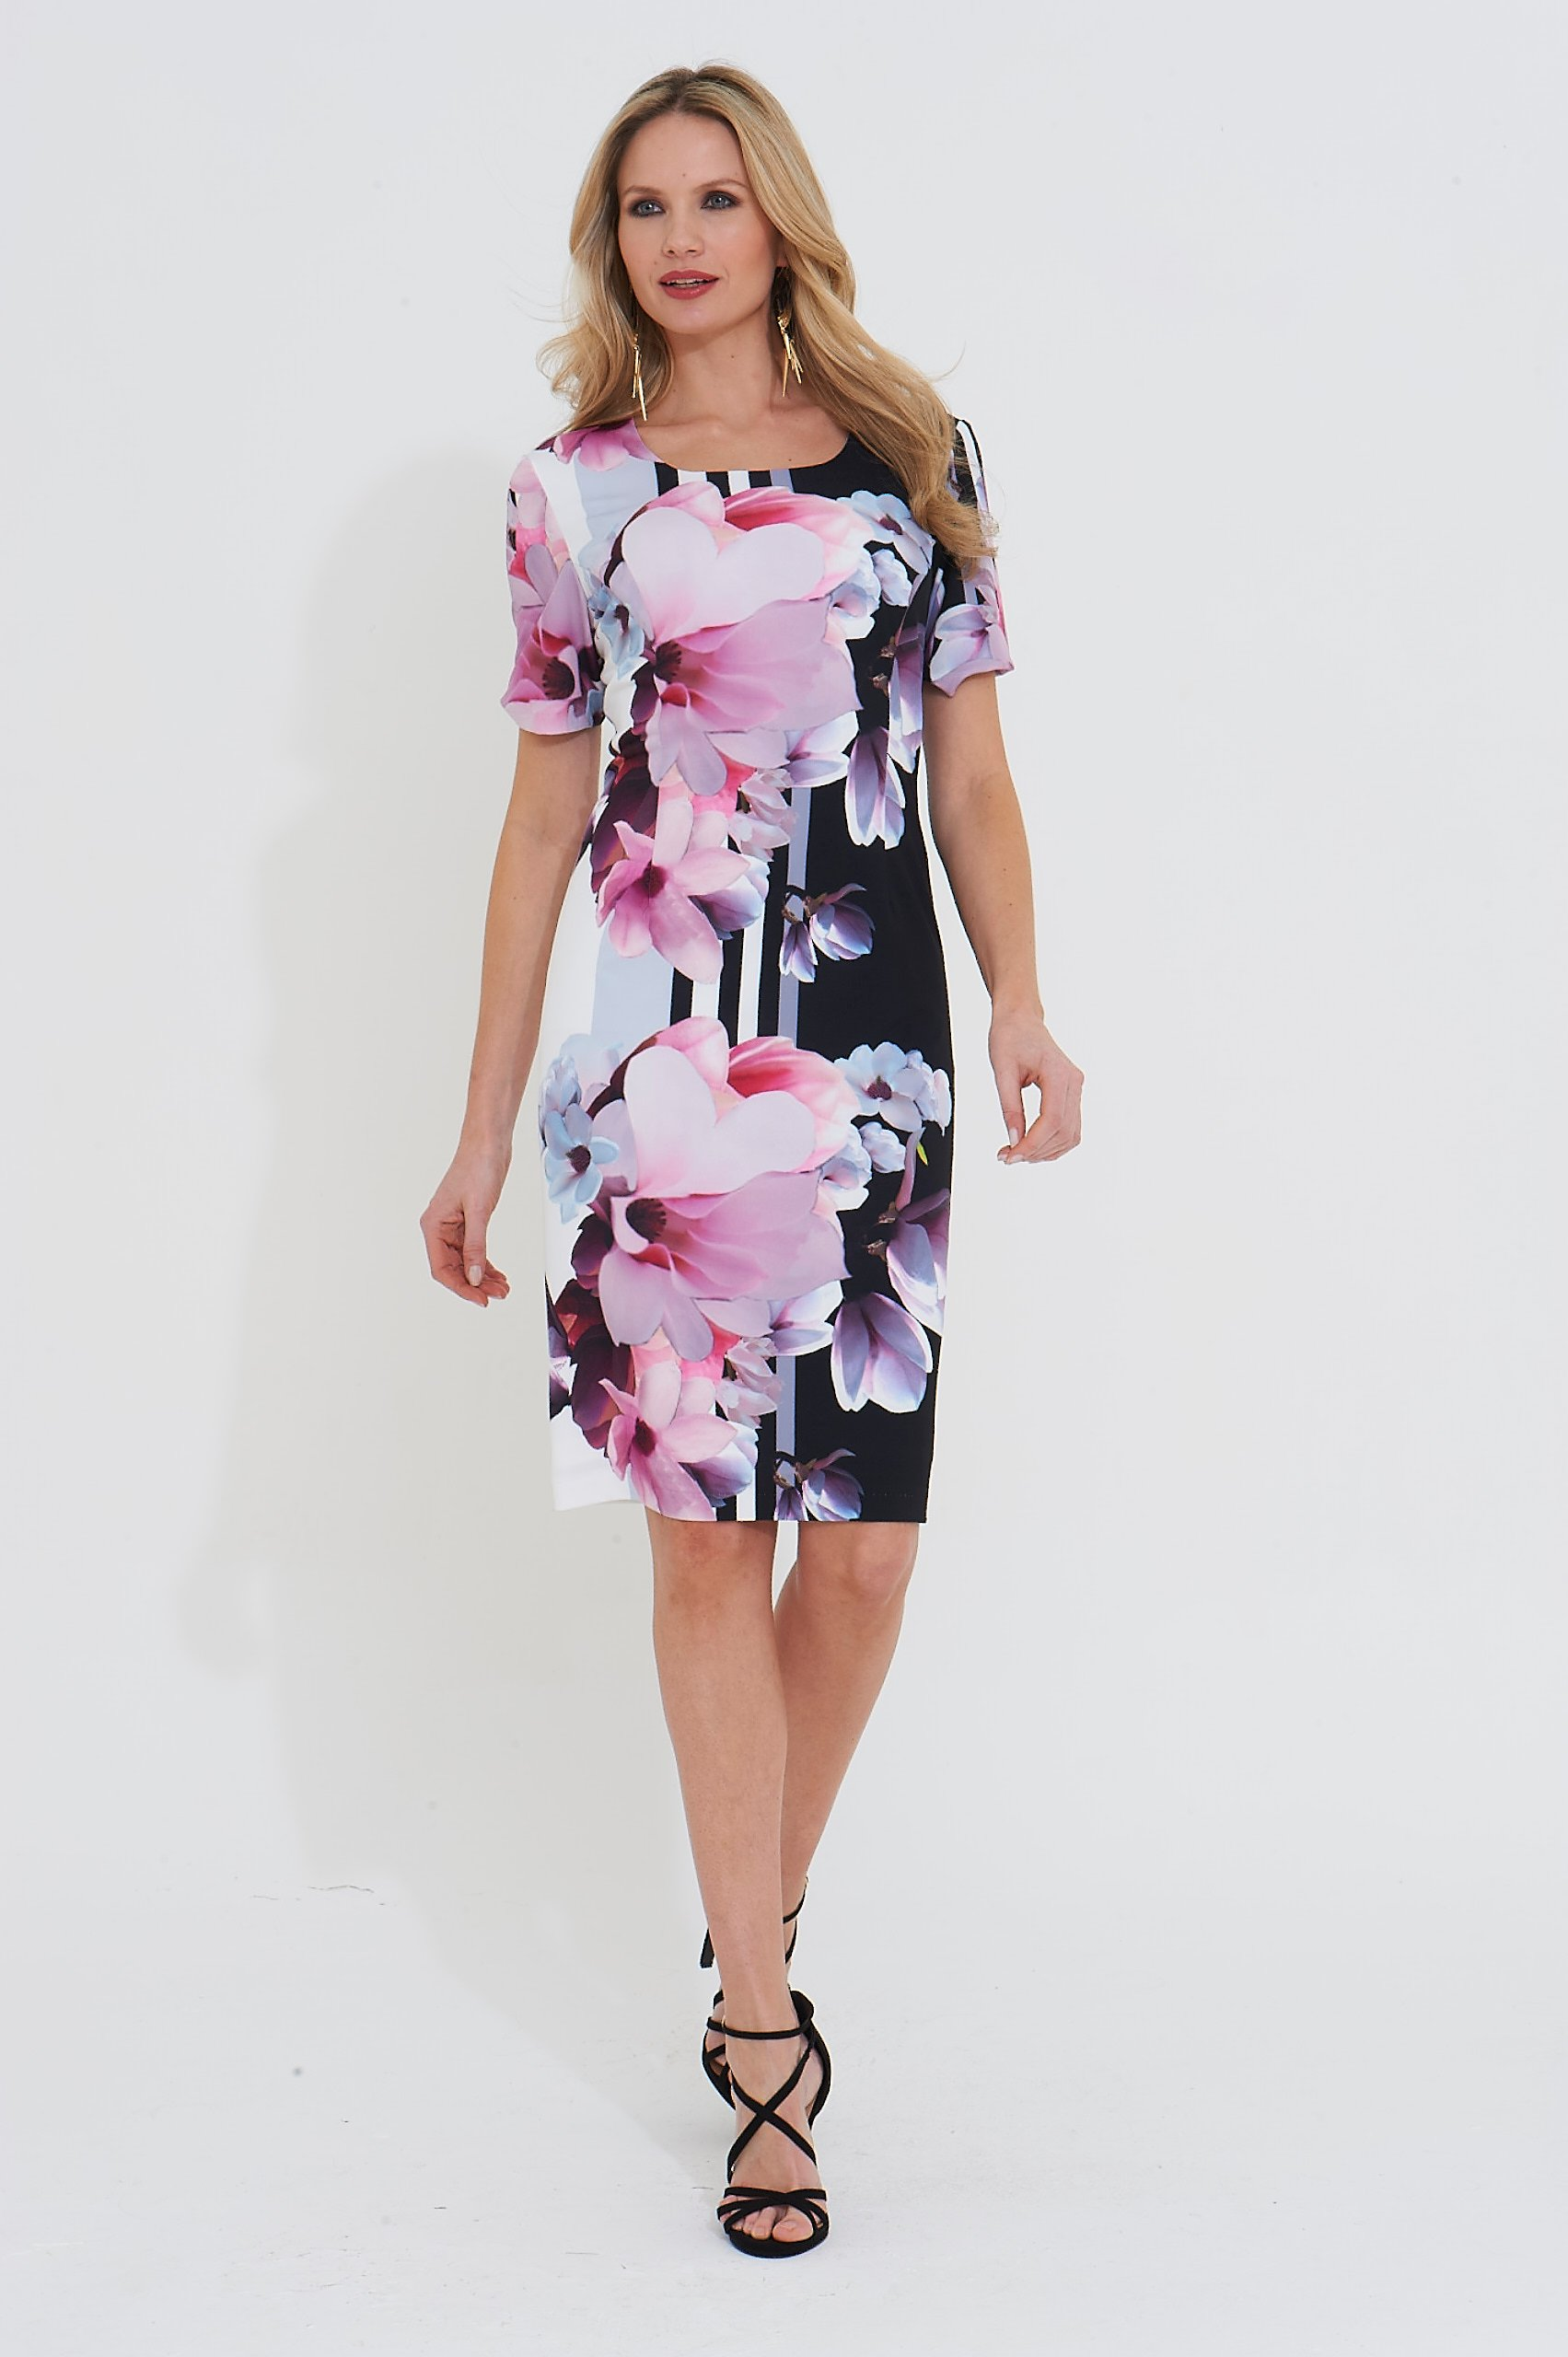 Roman Originals Floral Stripe Print Dress in Black